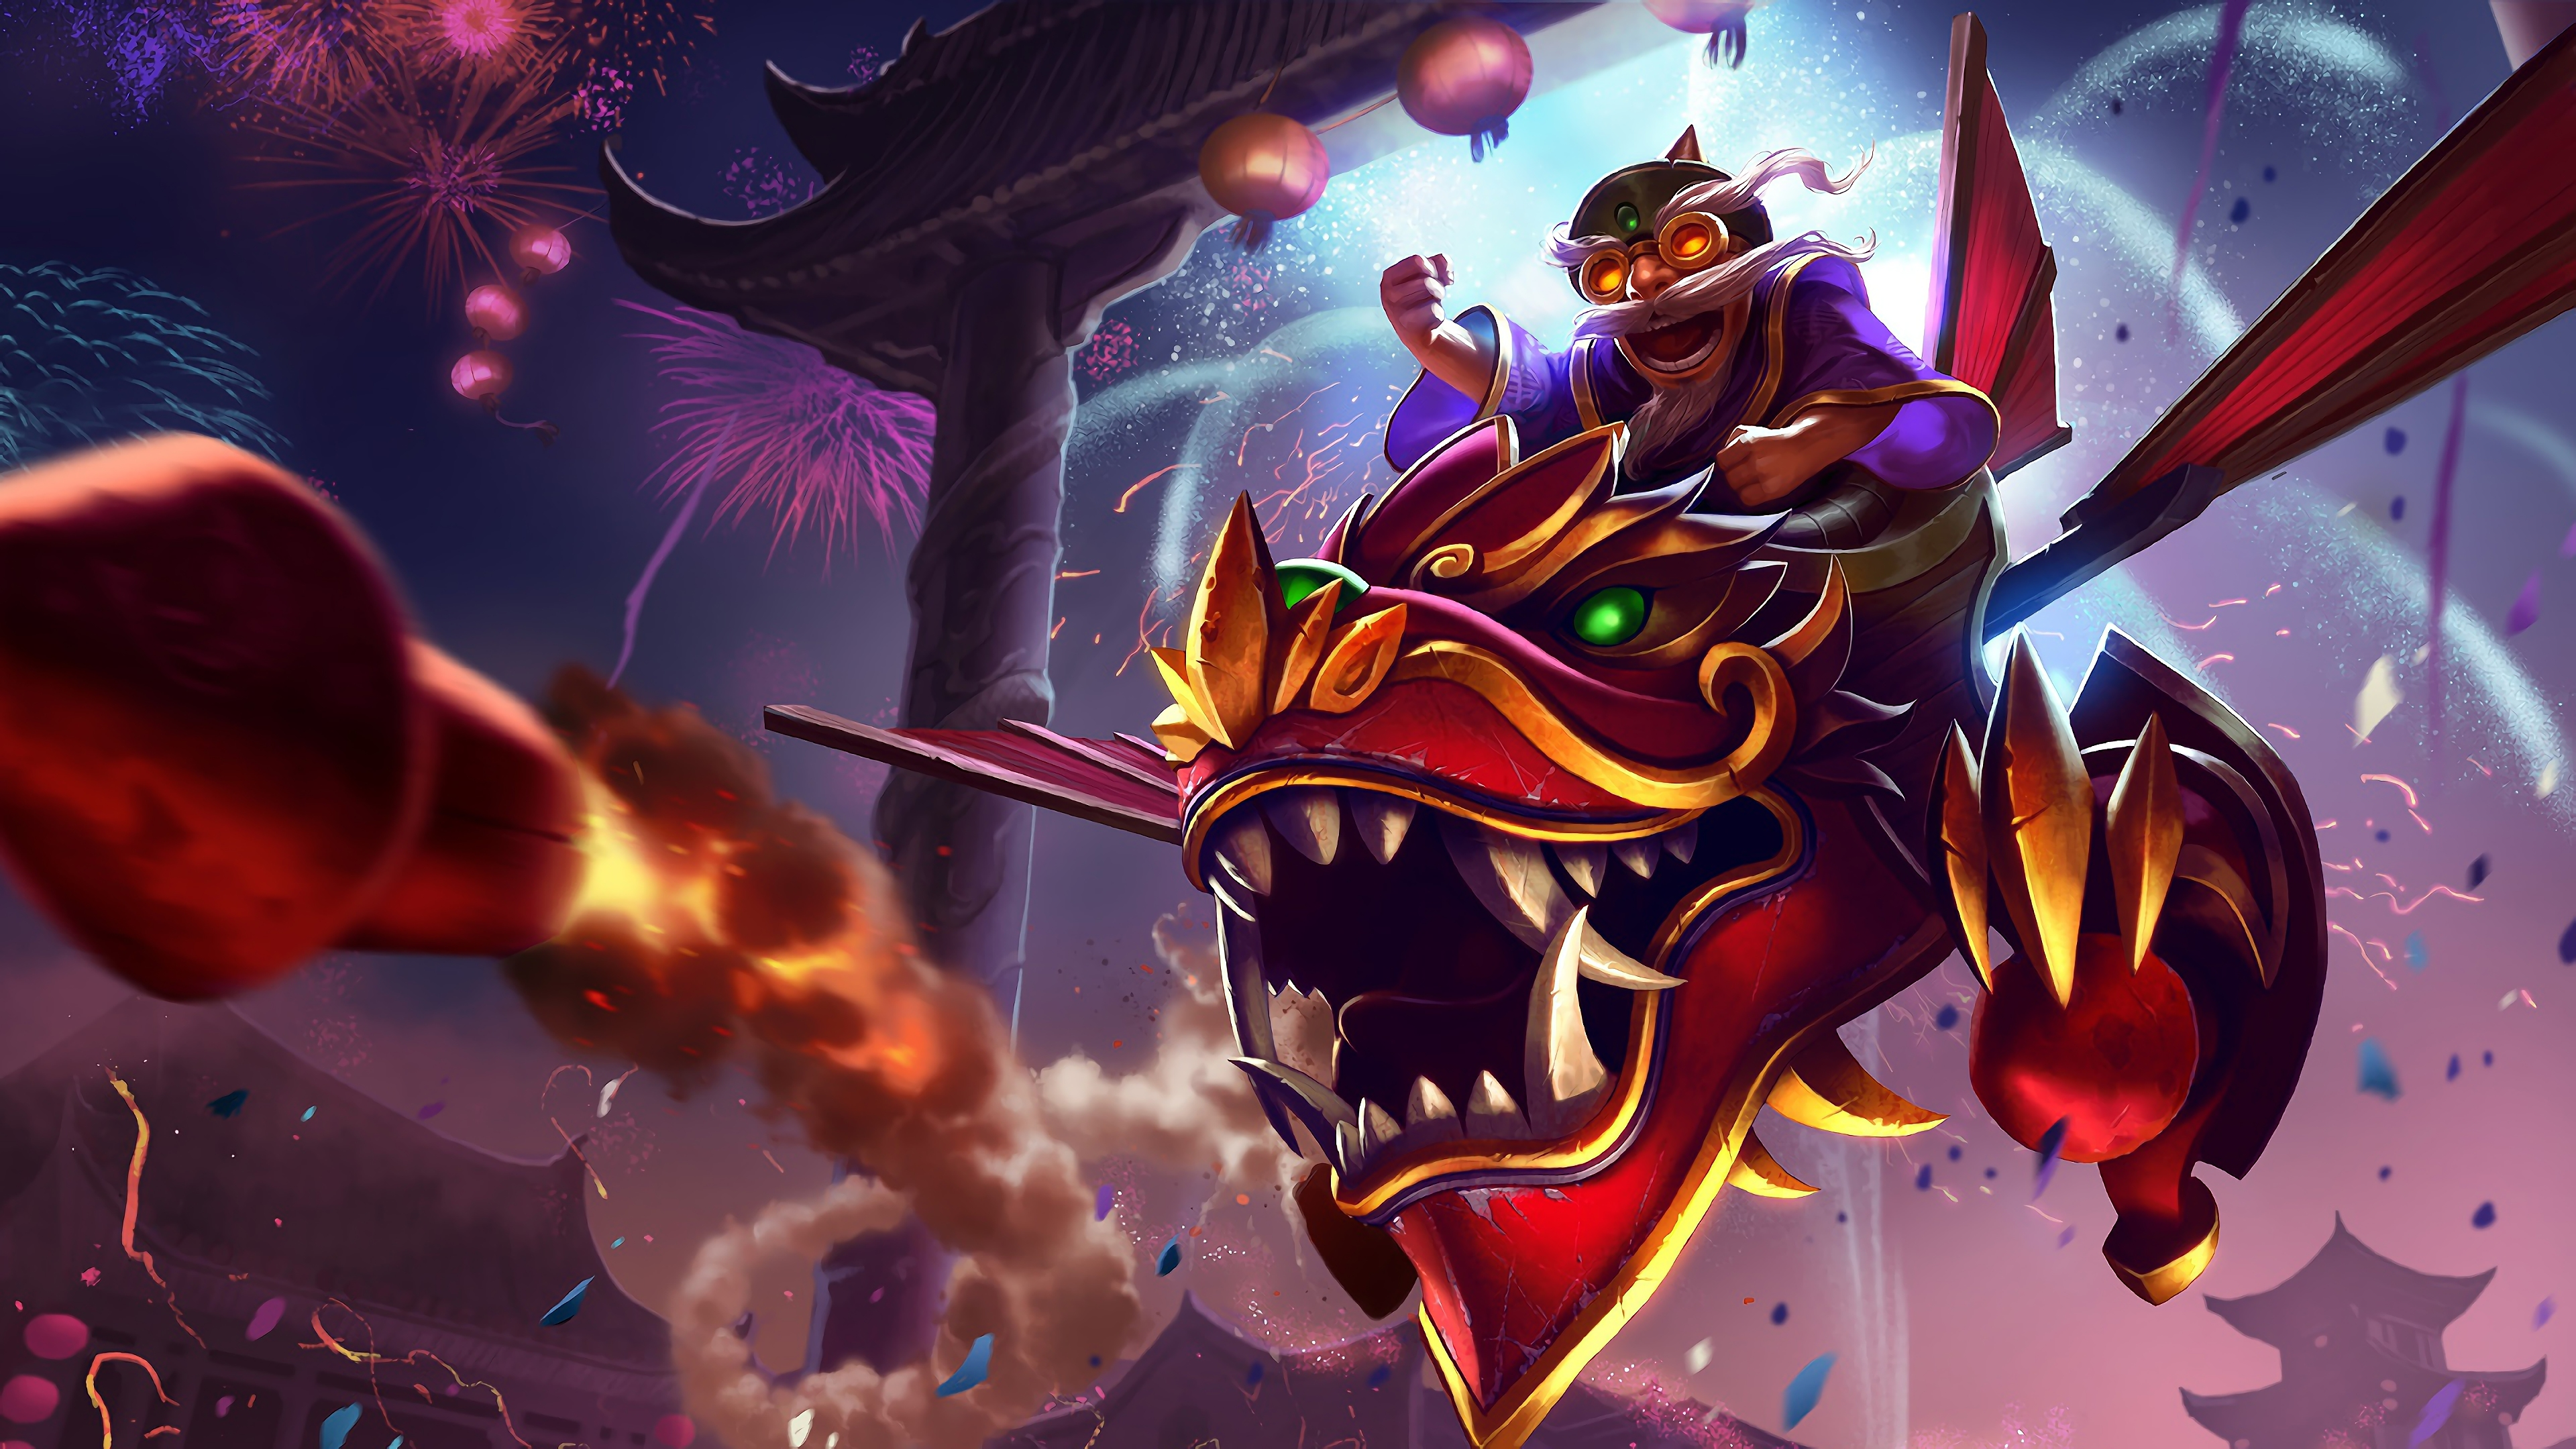 dragonwing corki lol splash art league of legends 1574099731 - Dragonwing Corki LoL Splash Art League of Legends - league of legends, Corki